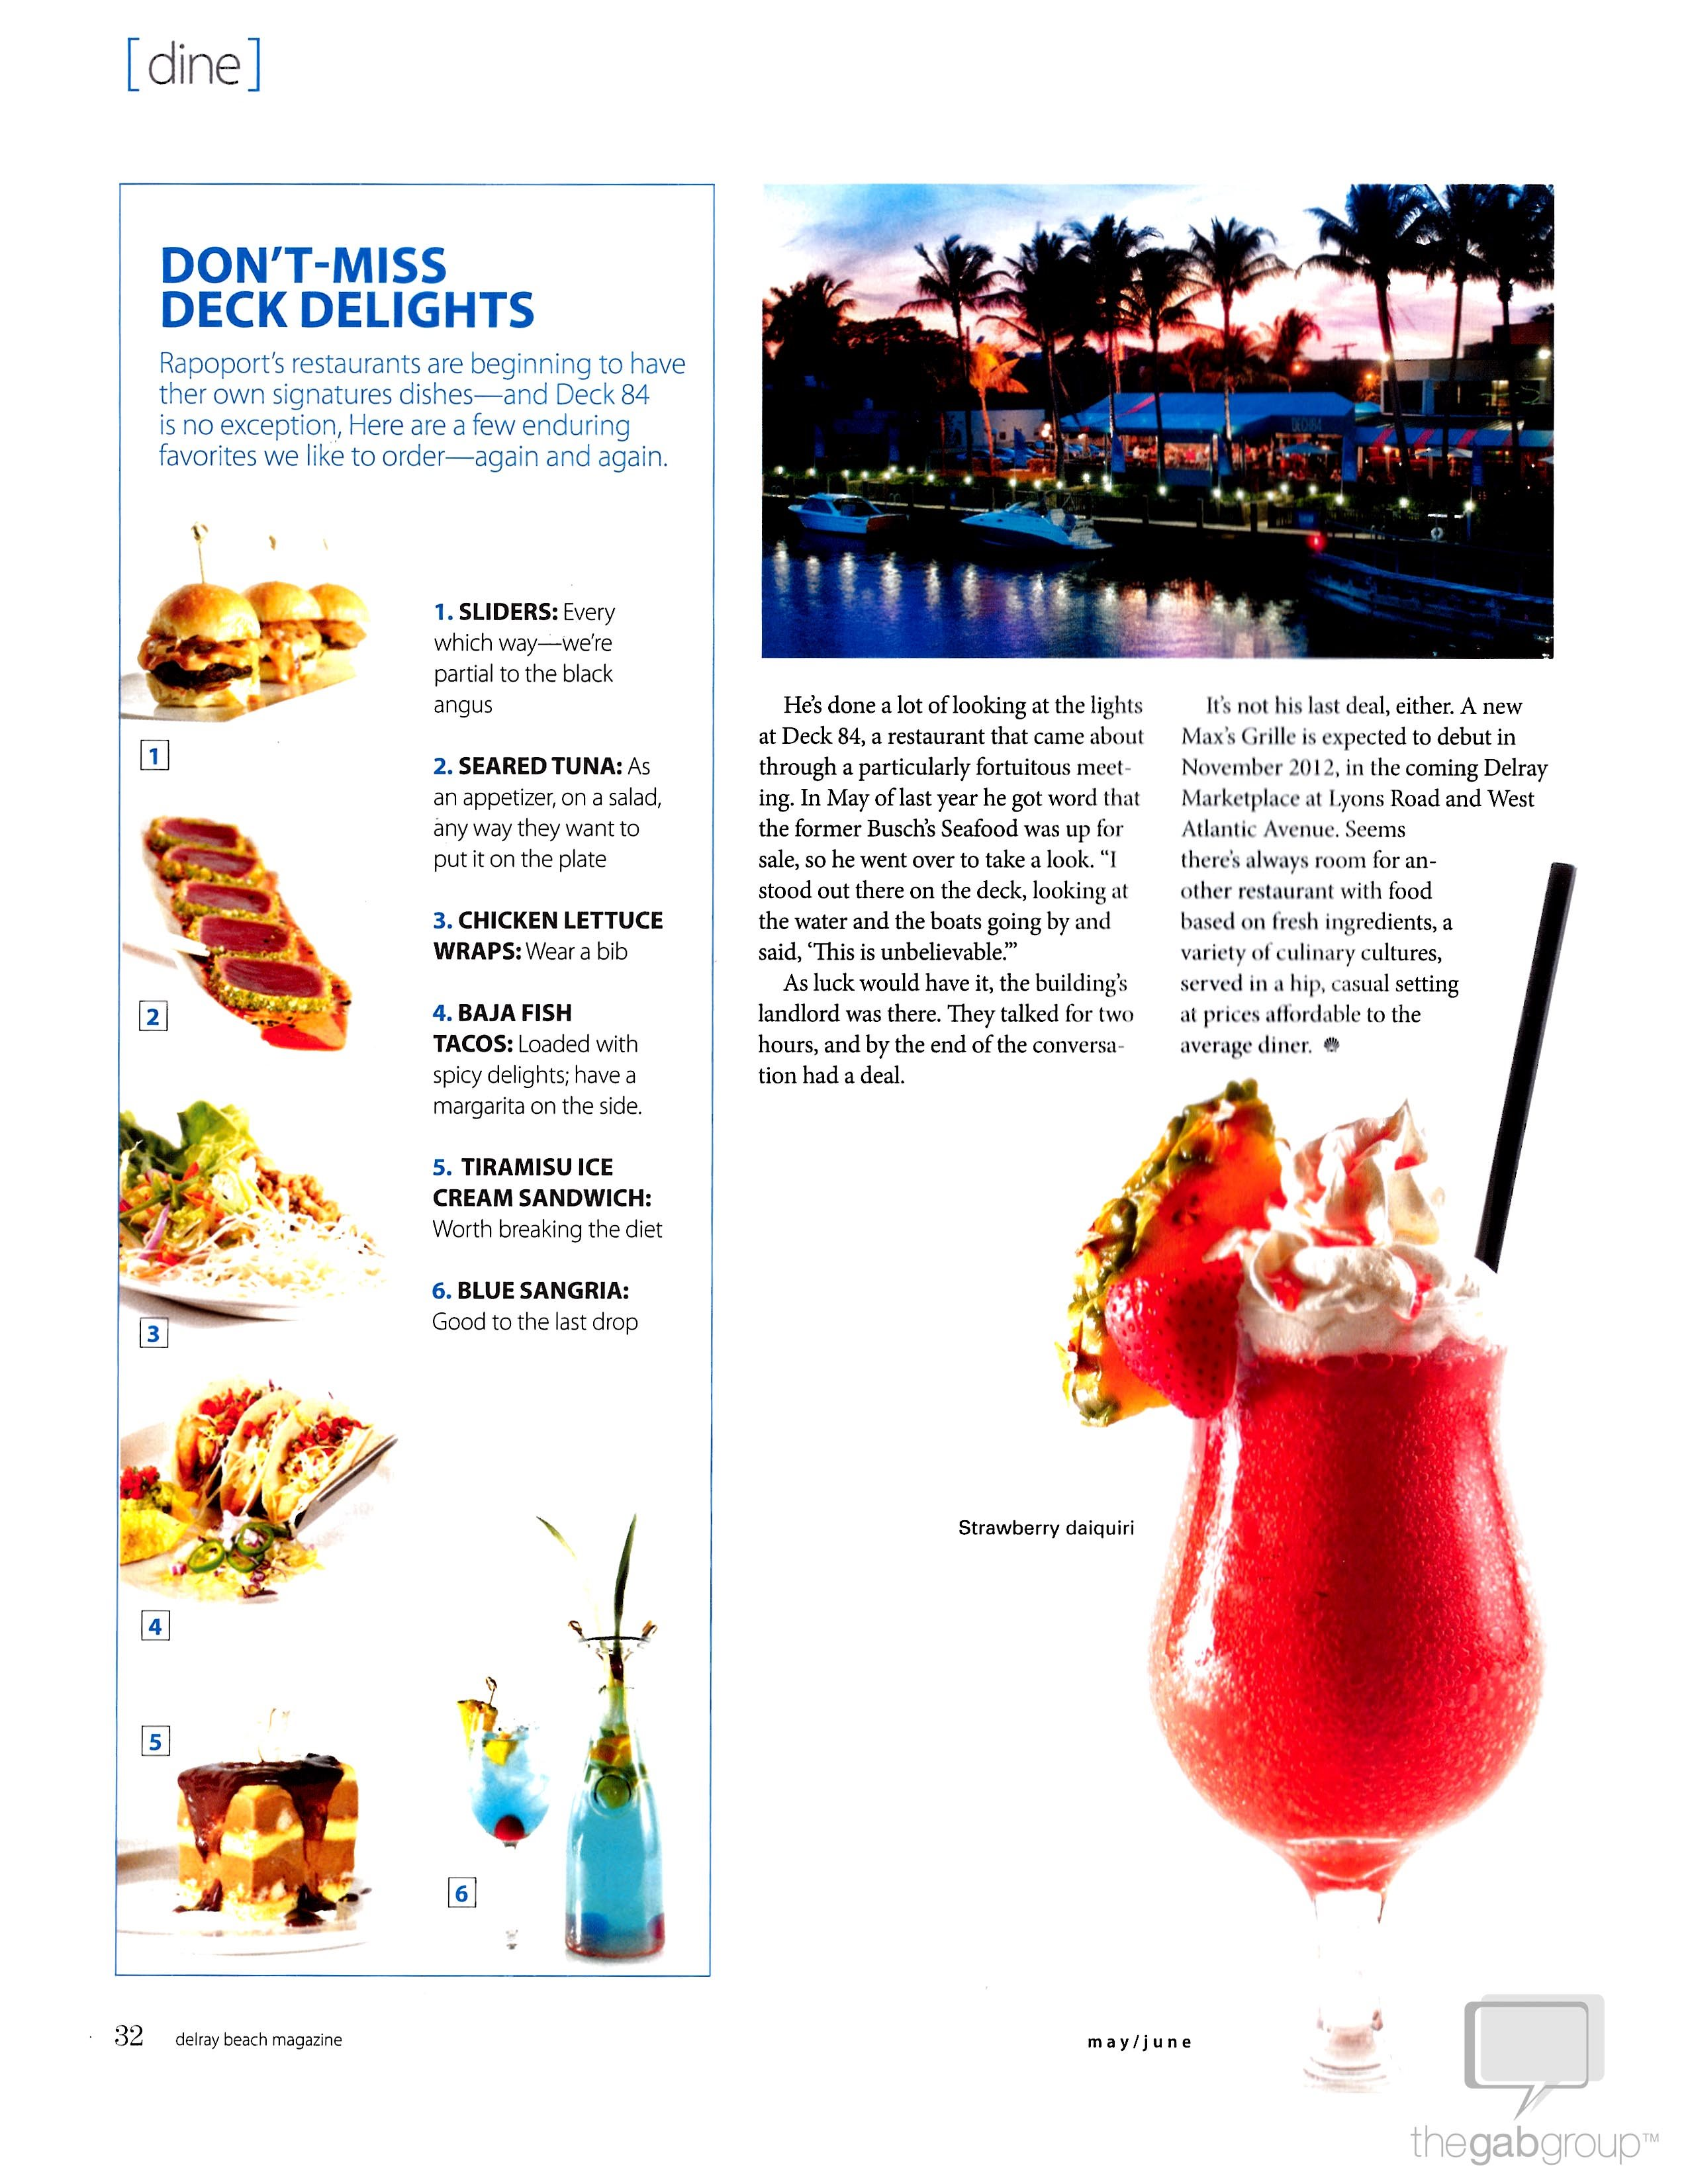 RRG_DECK84_Press_DelrayBeachMag_0511_pg5.jpg